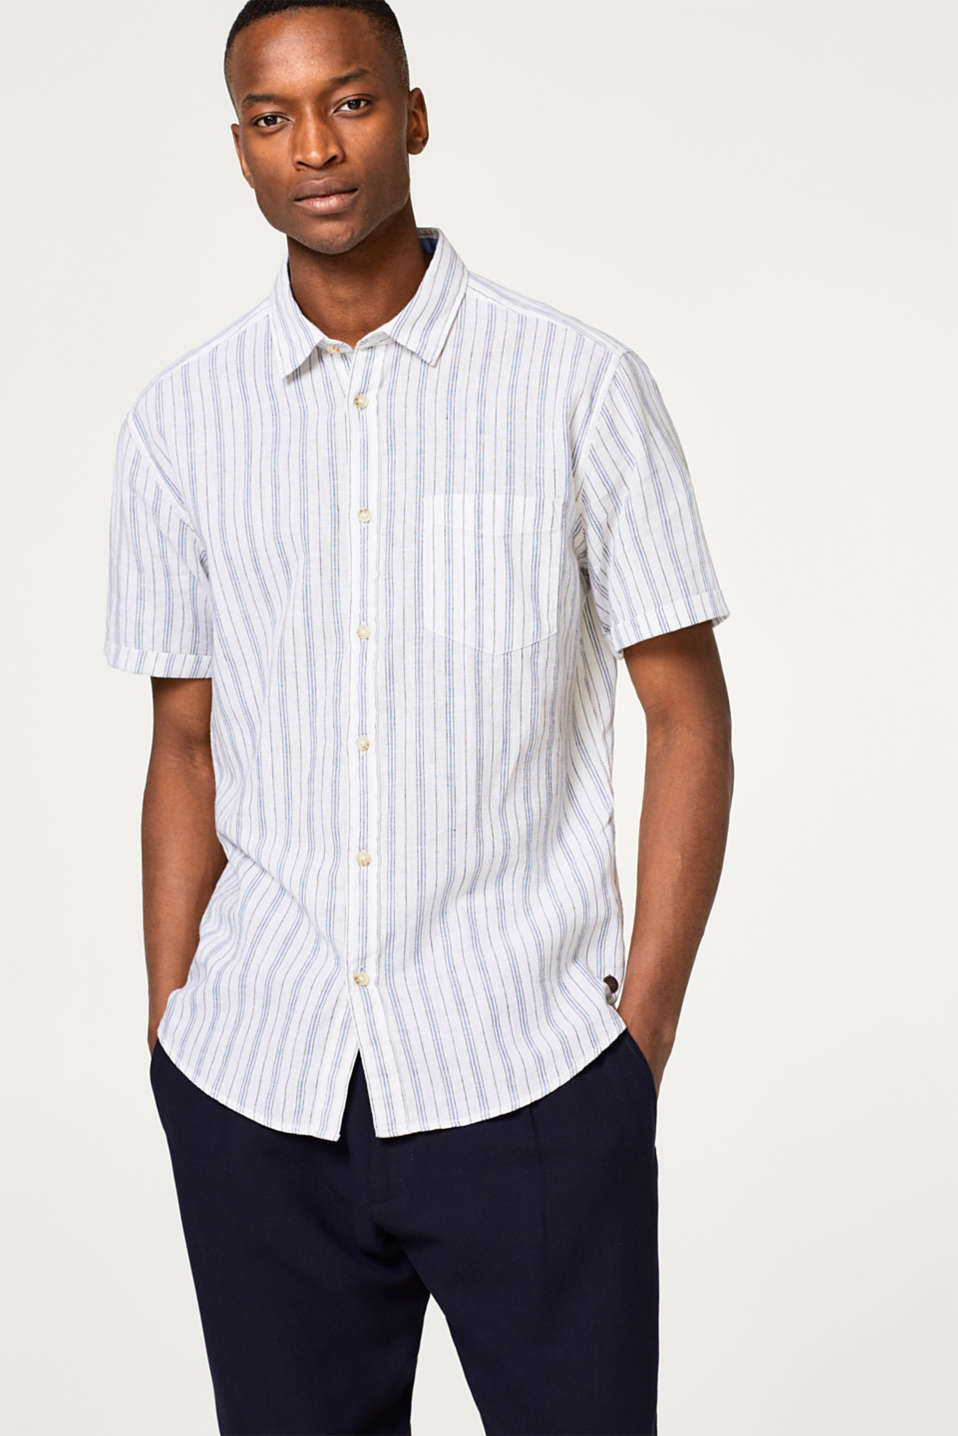 Esprit - Made of blended linen: short sleeve shirt with vertical stripes